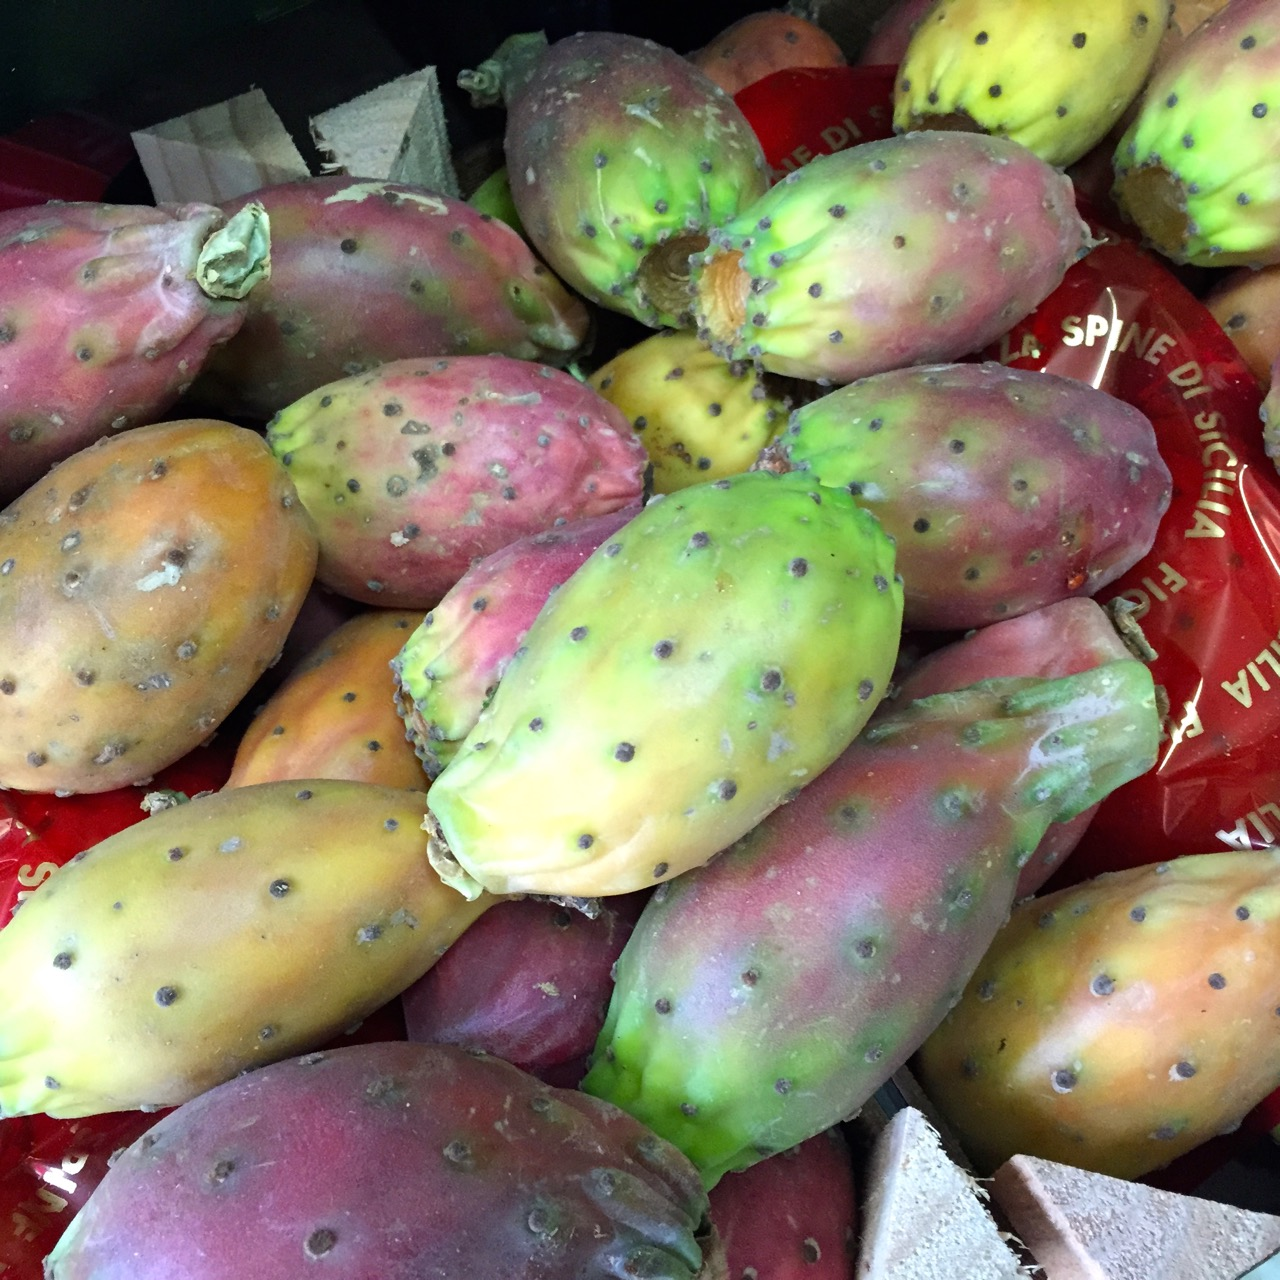 prickly pears in rome market